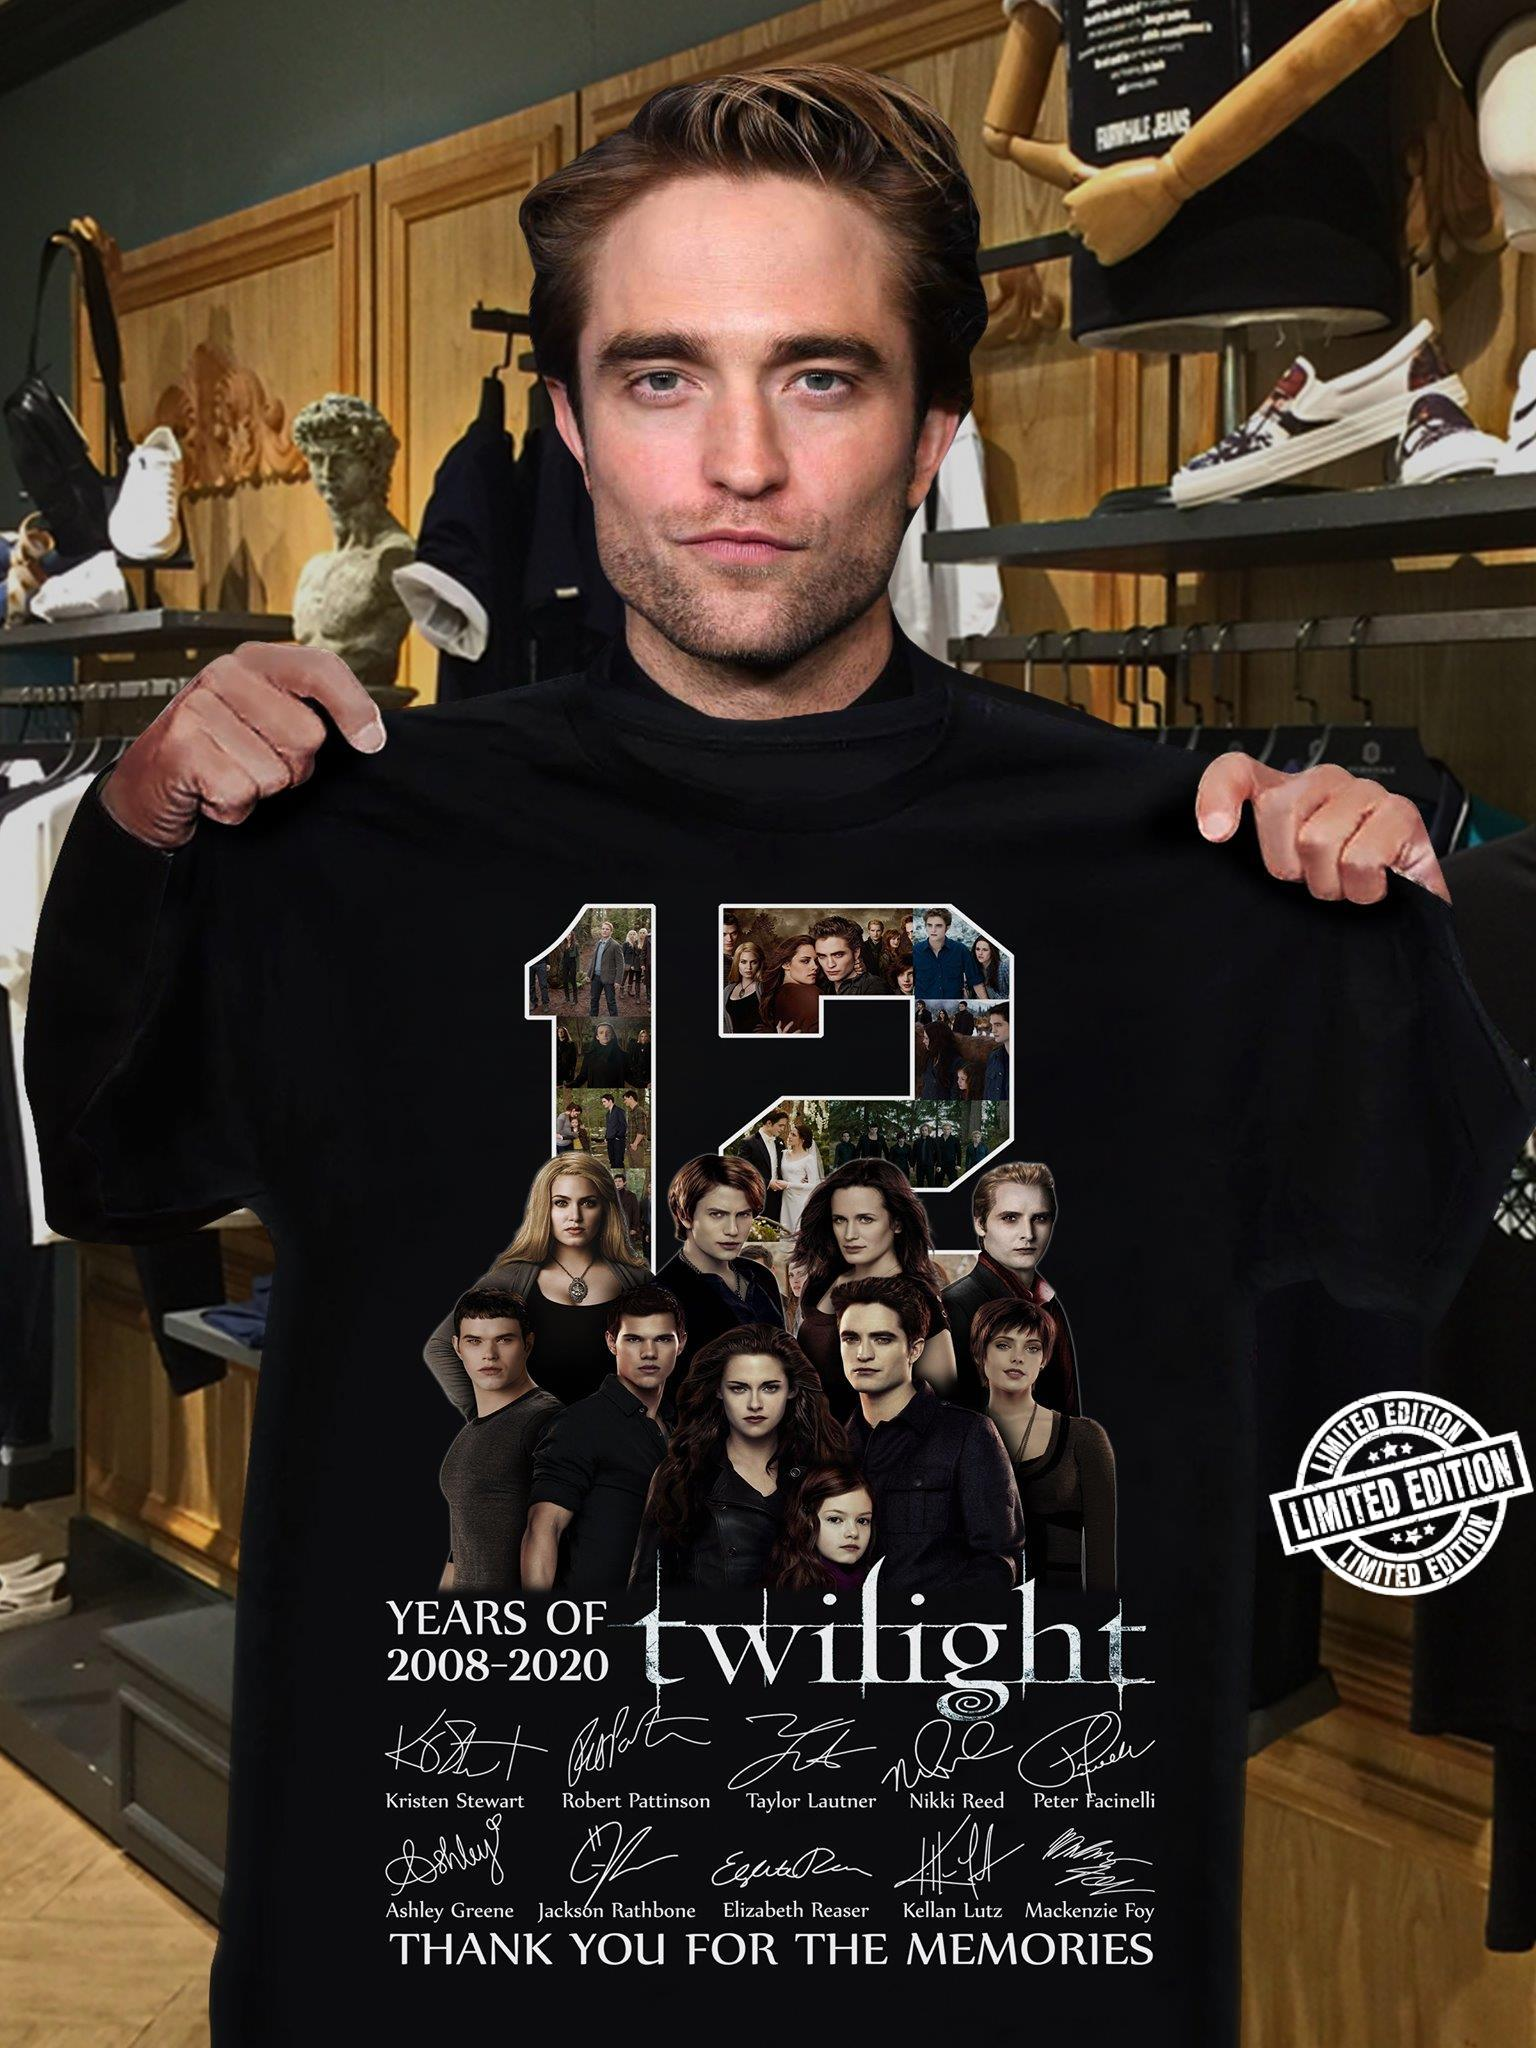 12 years of Twilight 2008 - 2020 thank you for the memories shirt